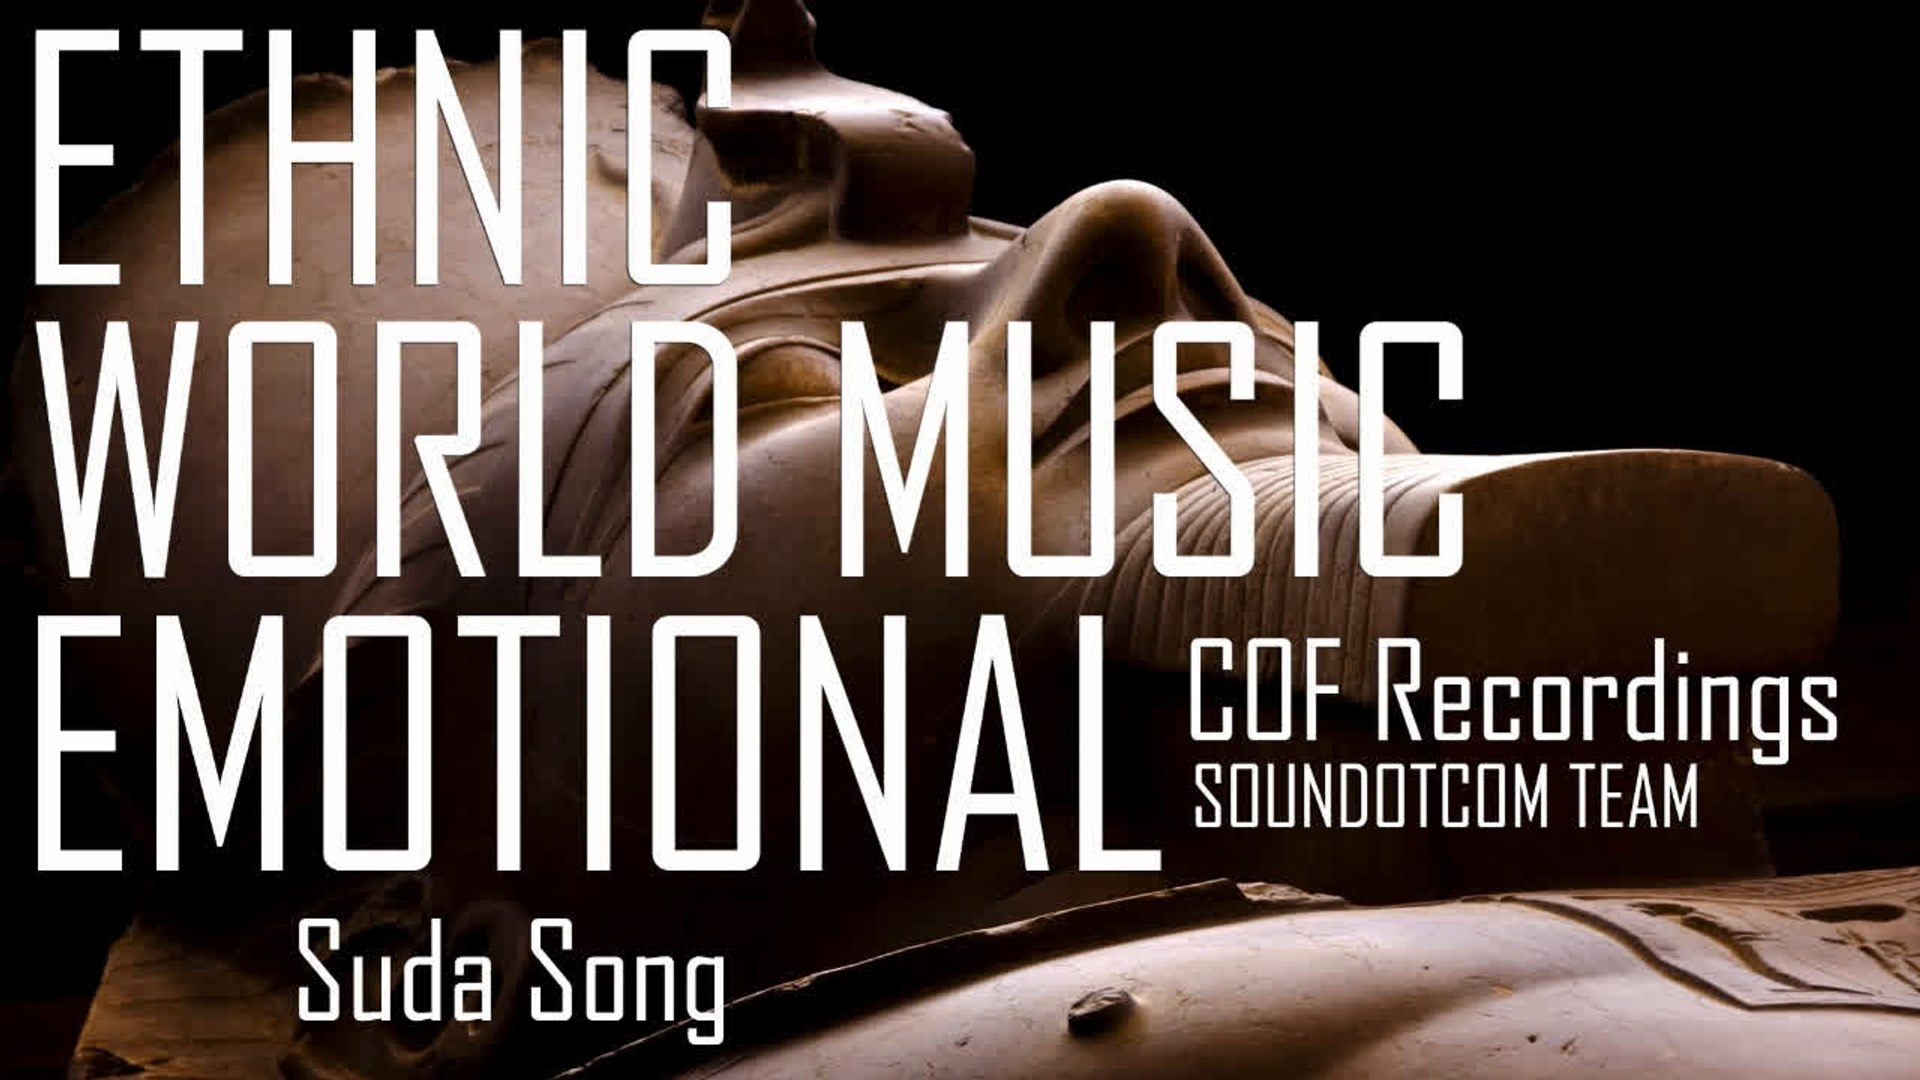 Royalty Free Music DOWNLOAD - World Music Ethnic Documentary | Suda Song